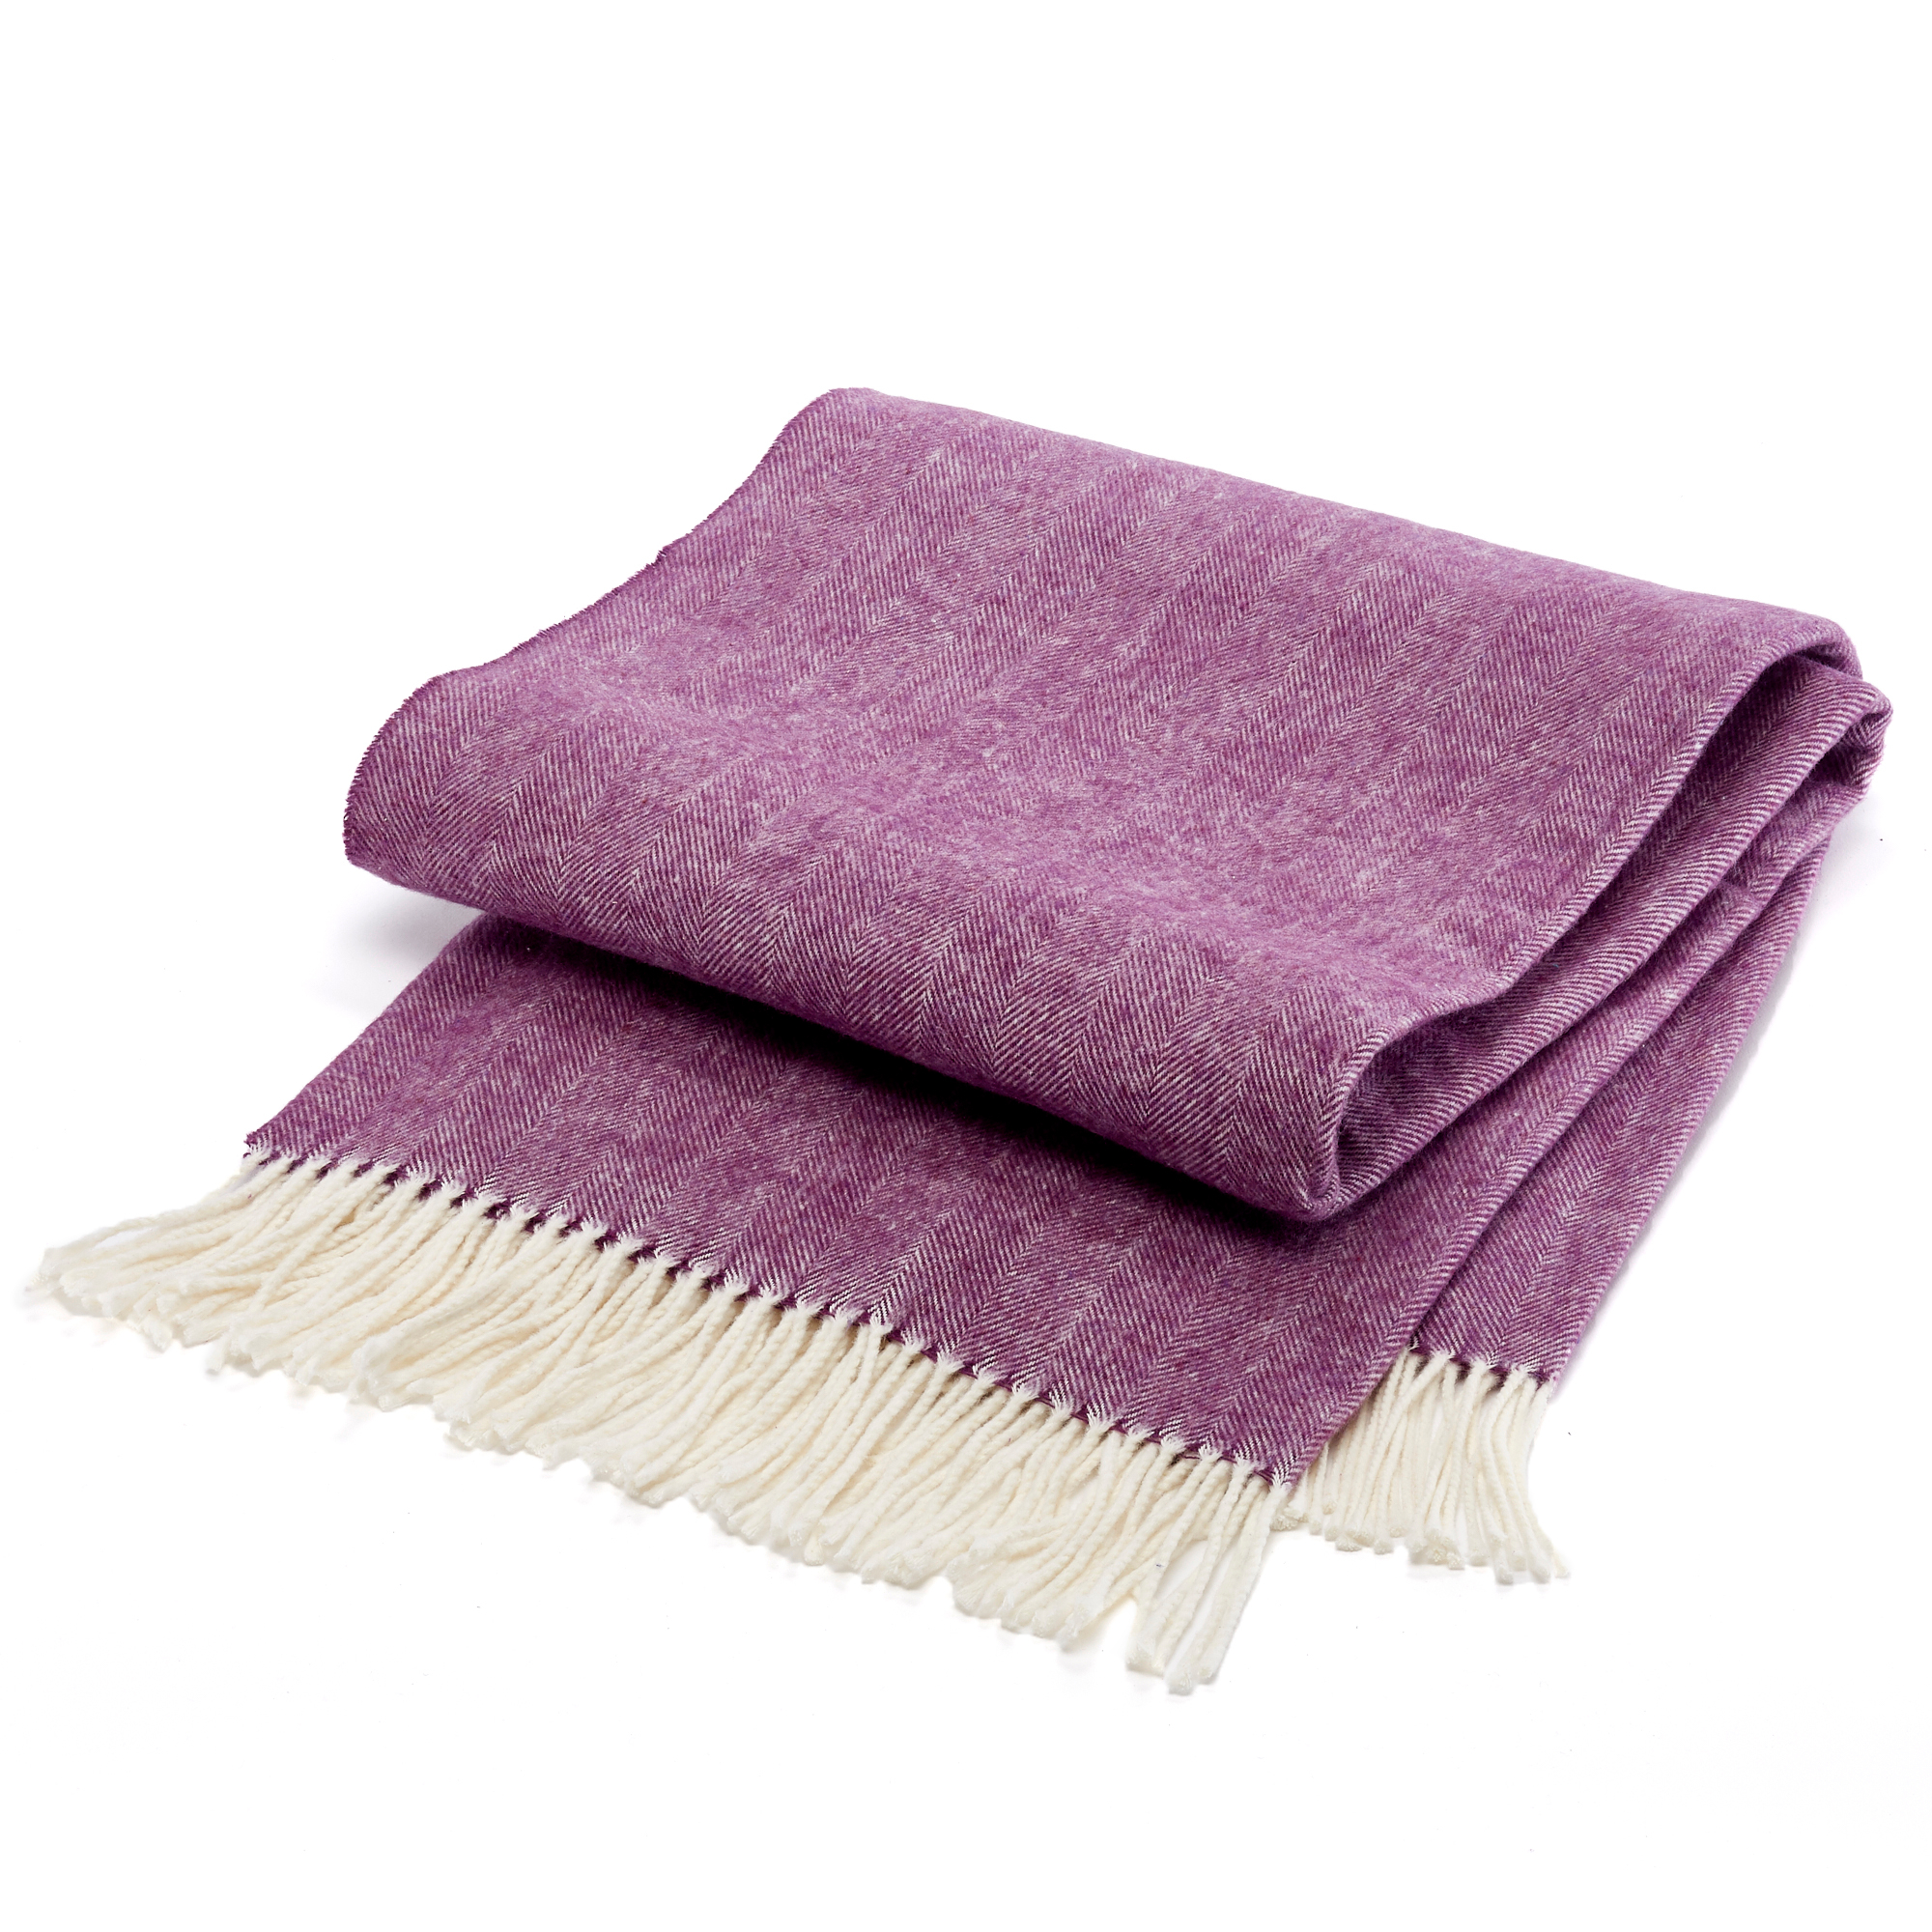 Herringbone Throw, Plum